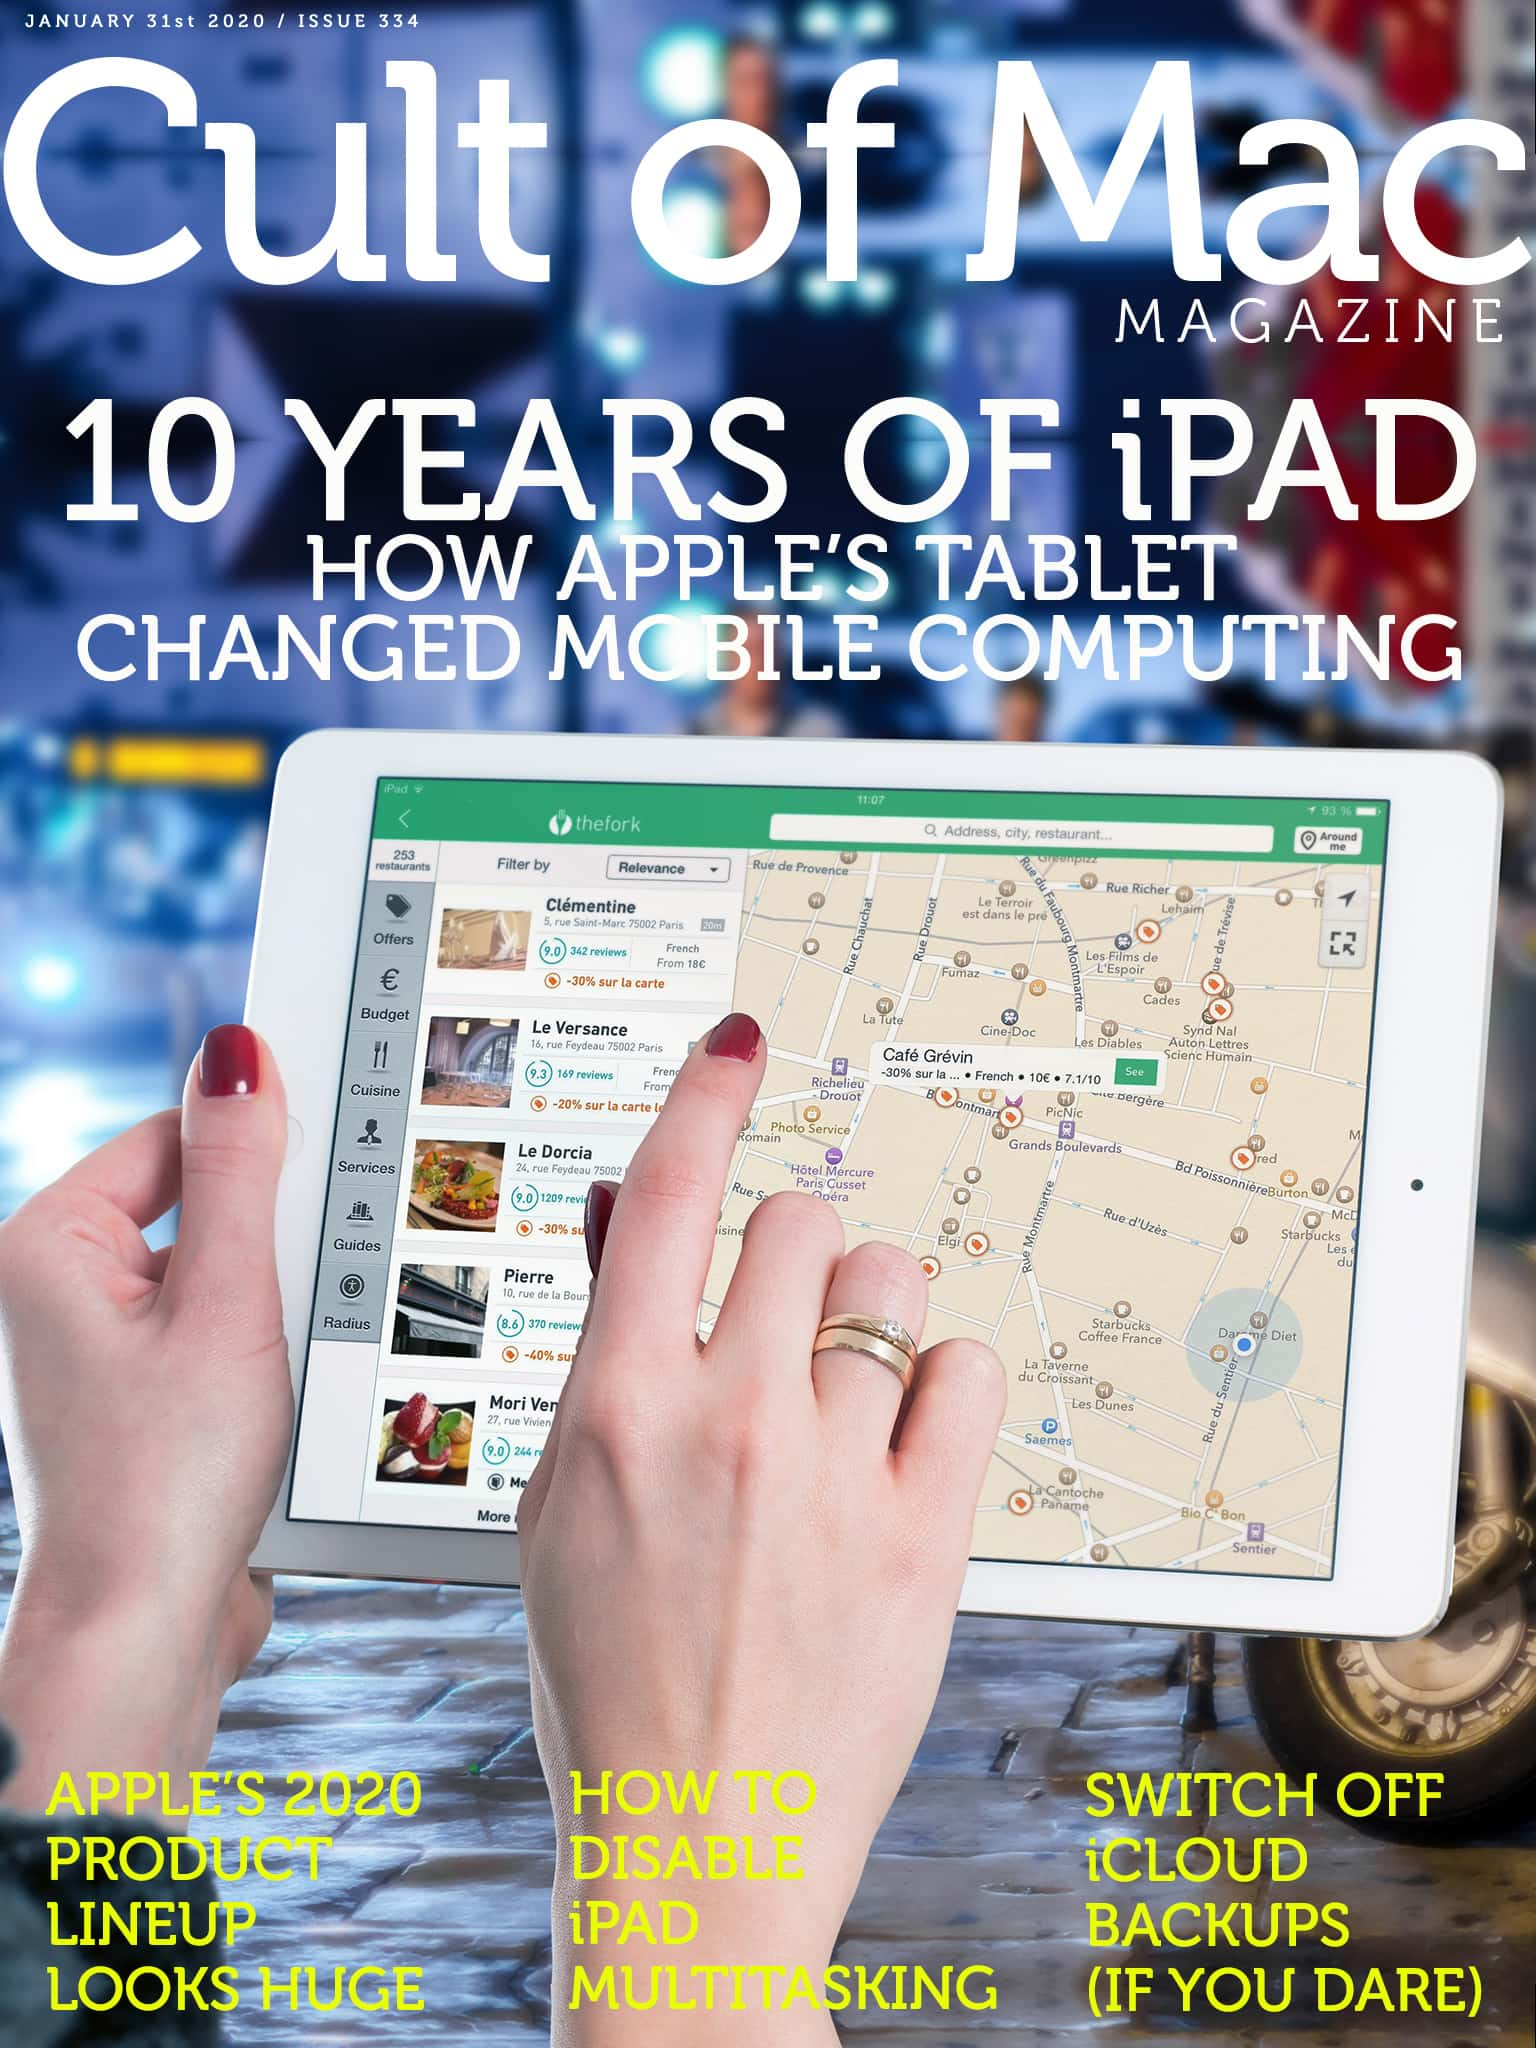 10 years of iPad: How Apple's tablet changed mobile computing.